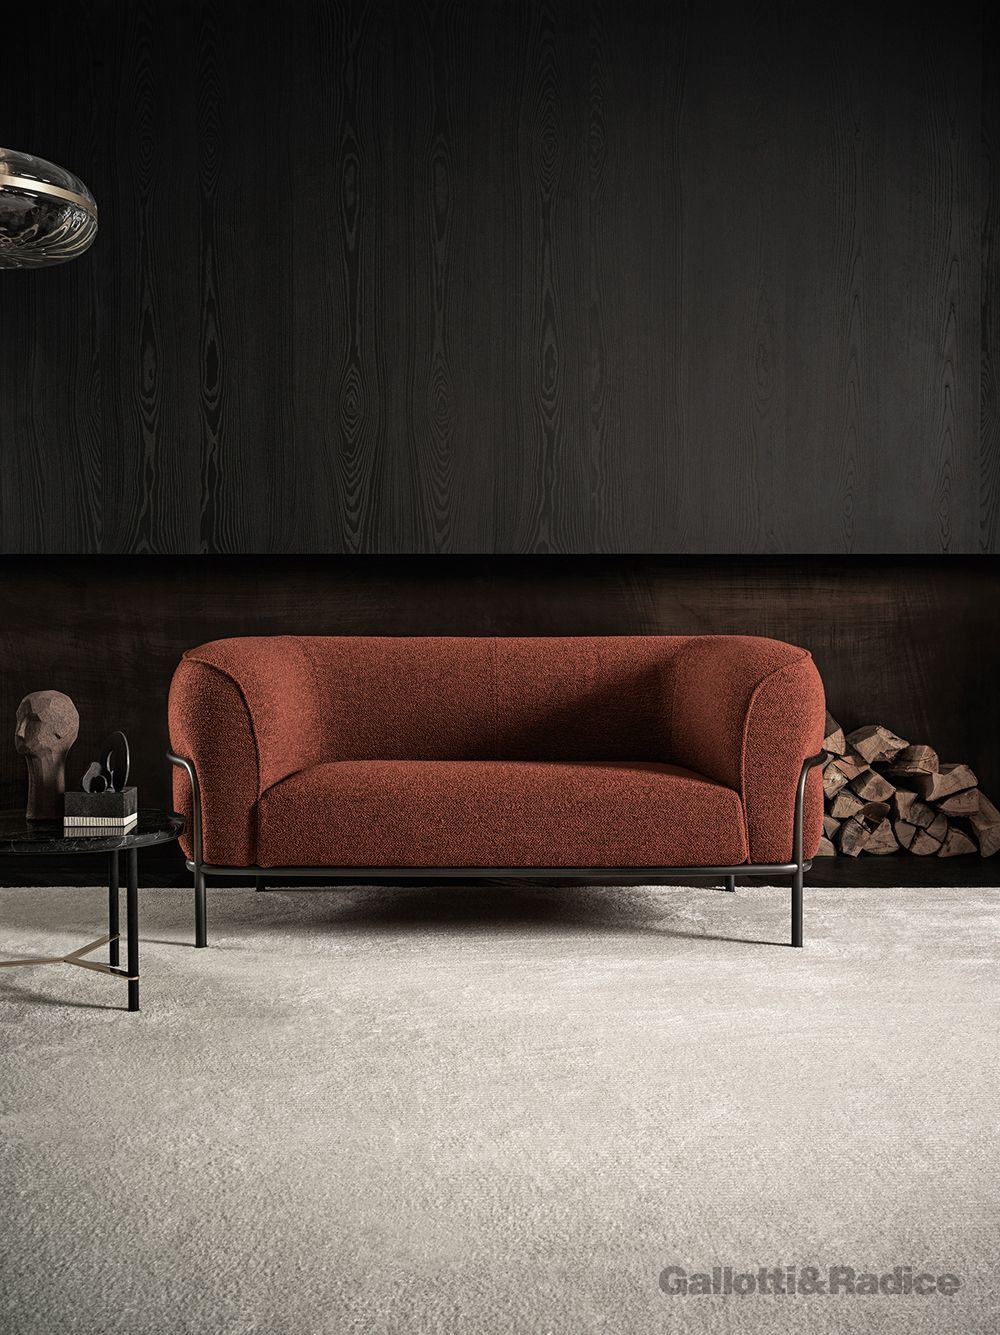 A Compact Sofa Defined By Distinctively Feminine Lines And Curvaceous Forms Despite Its Imposi Contemporary Furniture Design Italian Furniture Modern Furniture